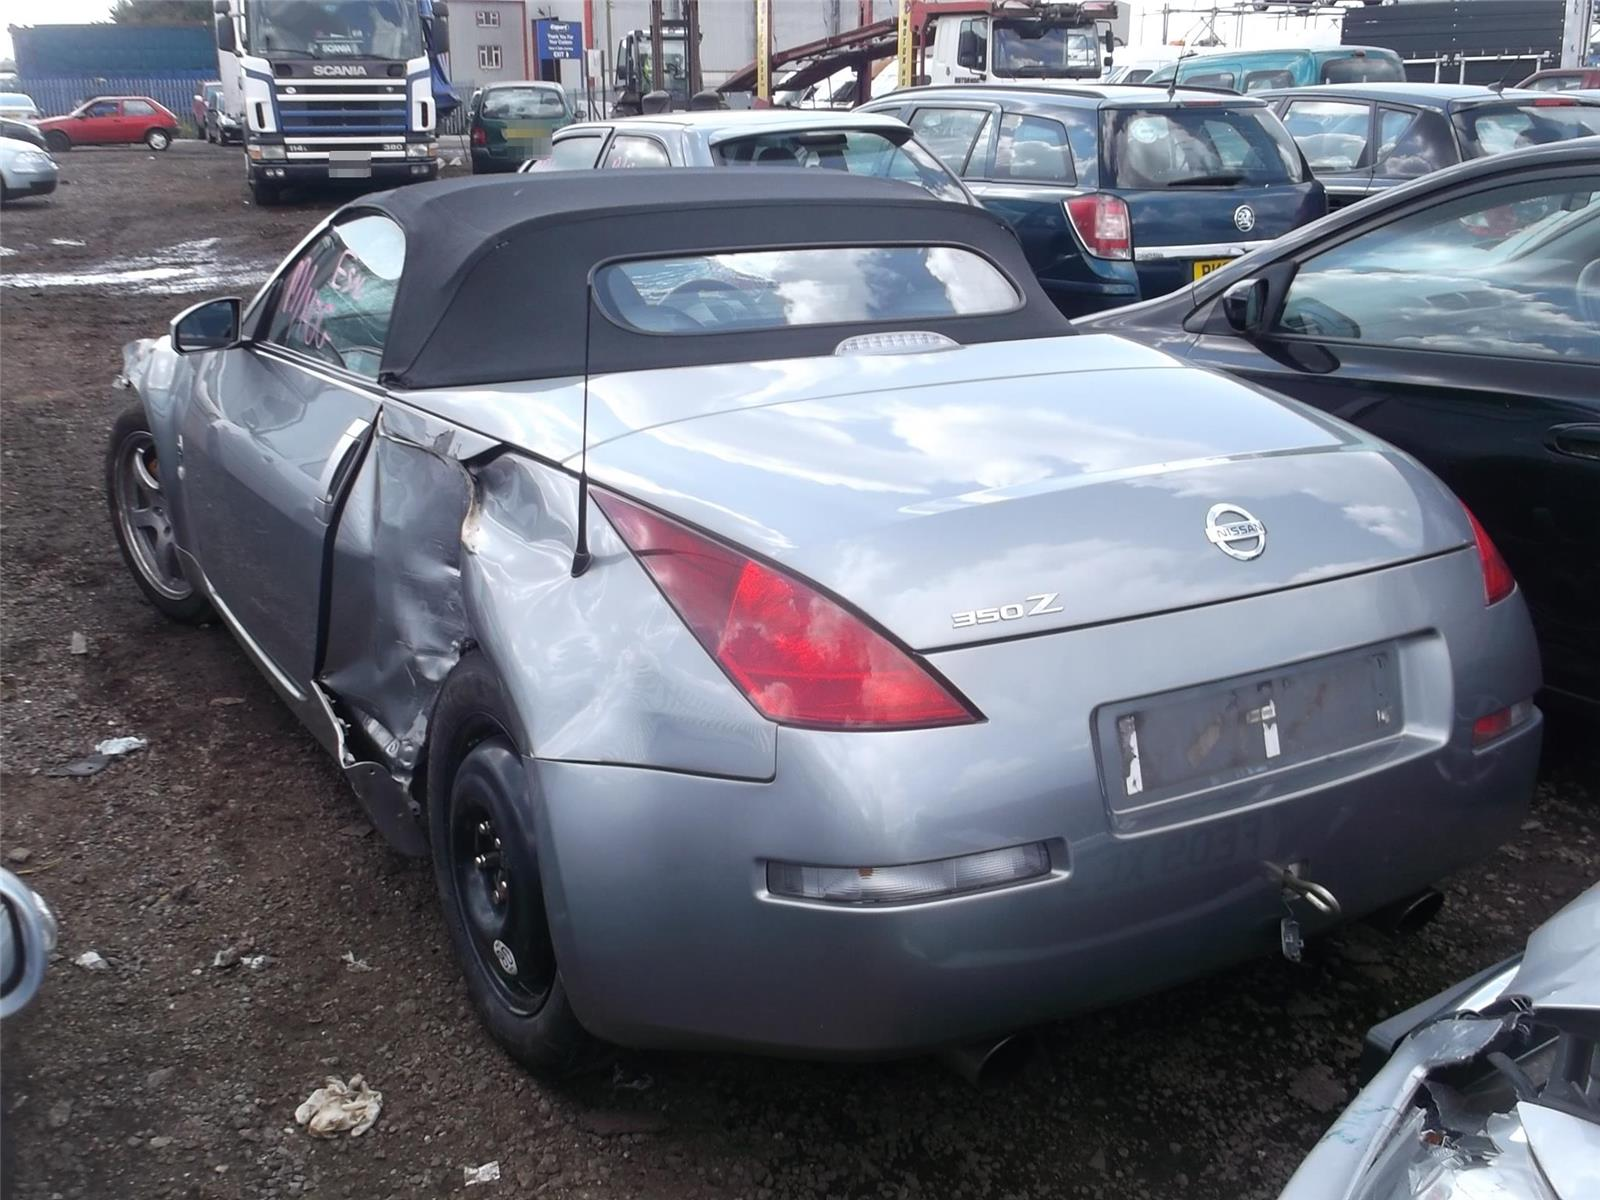 Nissan 350z 2003 To 2007 Lamp Assembly Rear Lh Petrol Manual For Engine Schematics Tail Light 03 07 2 Door Cabriolet Passengers Side 1319412